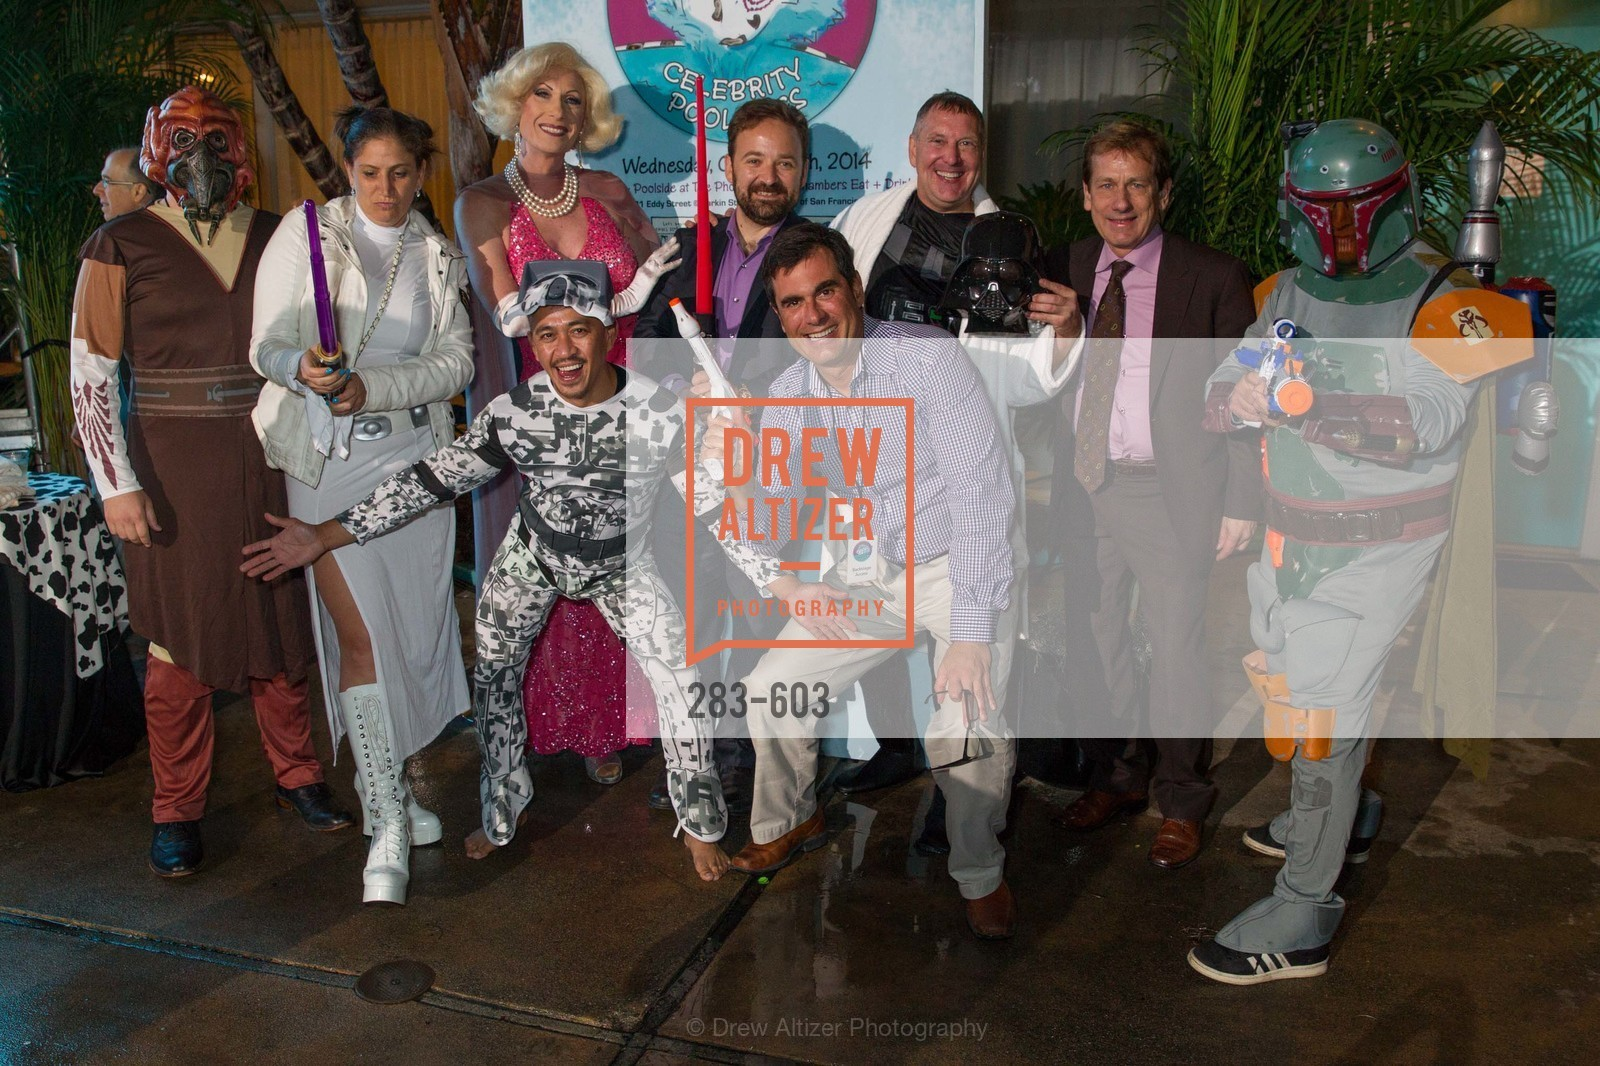 Jamie Teiser, Donna Sachet, Chris Taylor, Alfredo Casuso, David Perry, Paul Melbostad, 22nd Annual TNDC CELEBRITY POOL TOSS, US, October 9th, 2014,Drew Altizer, Drew Altizer Photography, full-service agency, private events, San Francisco photographer, photographer california